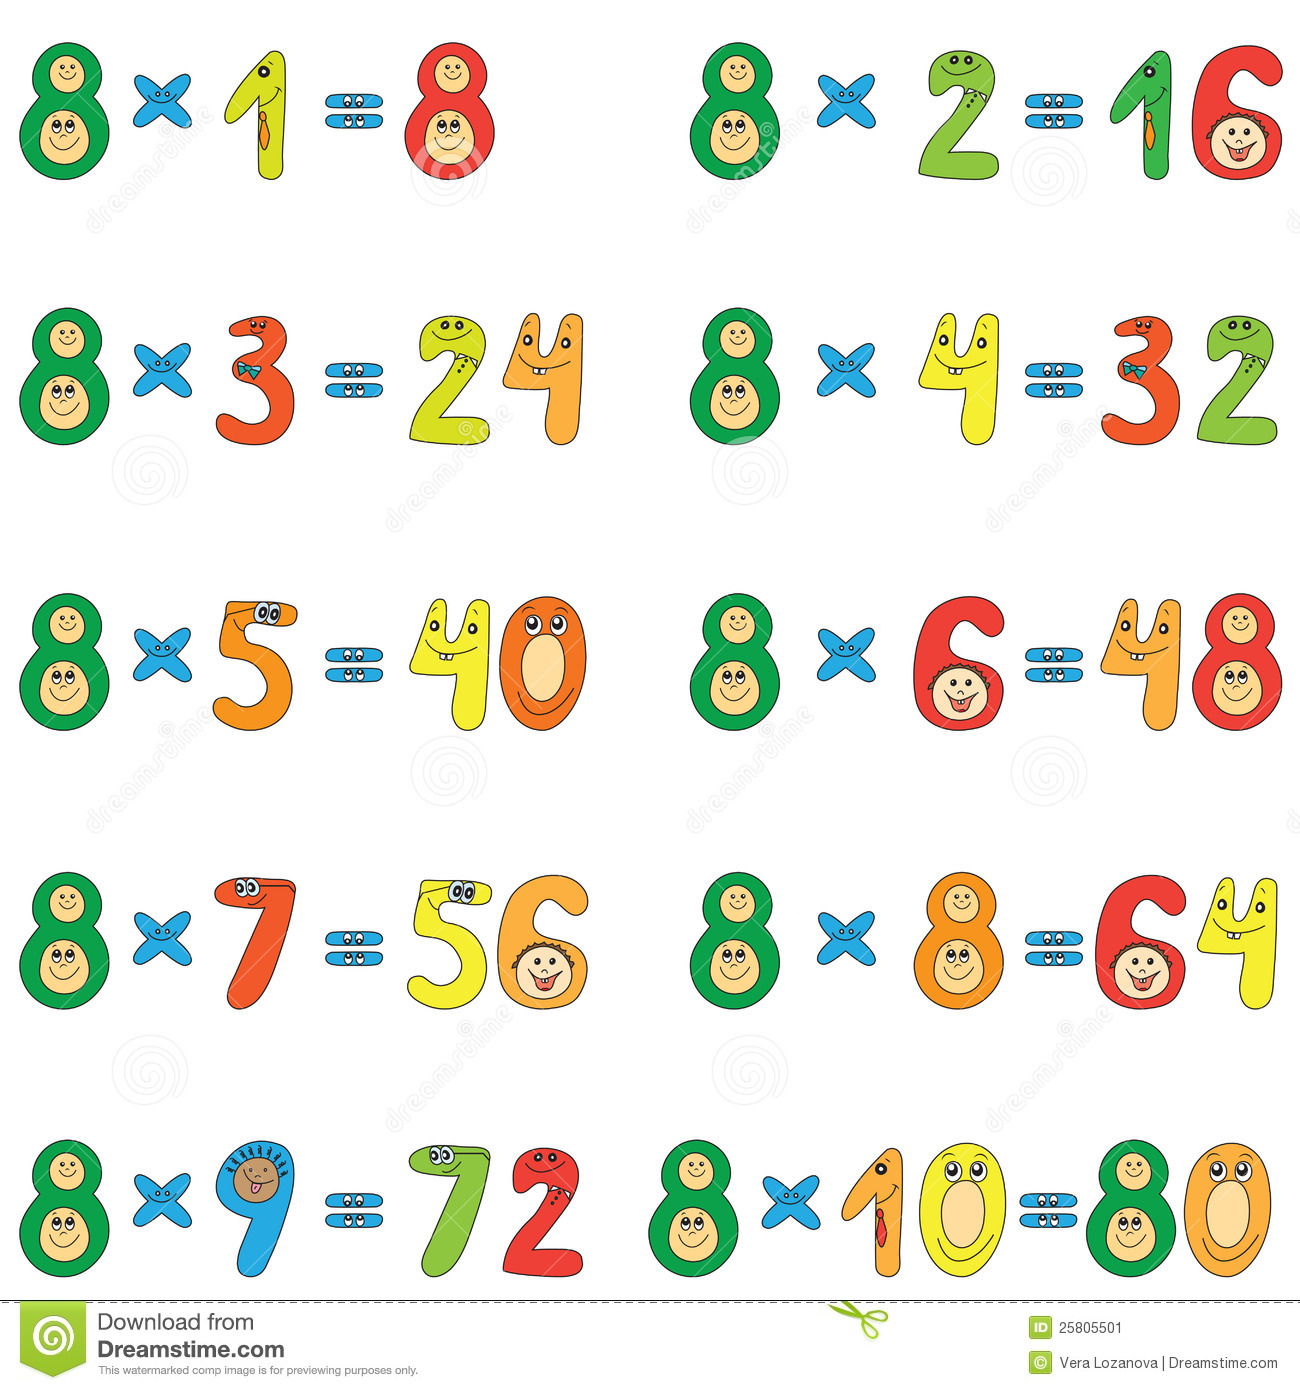 Multiplication Table Of 8 Stock Image - Image: 25805501